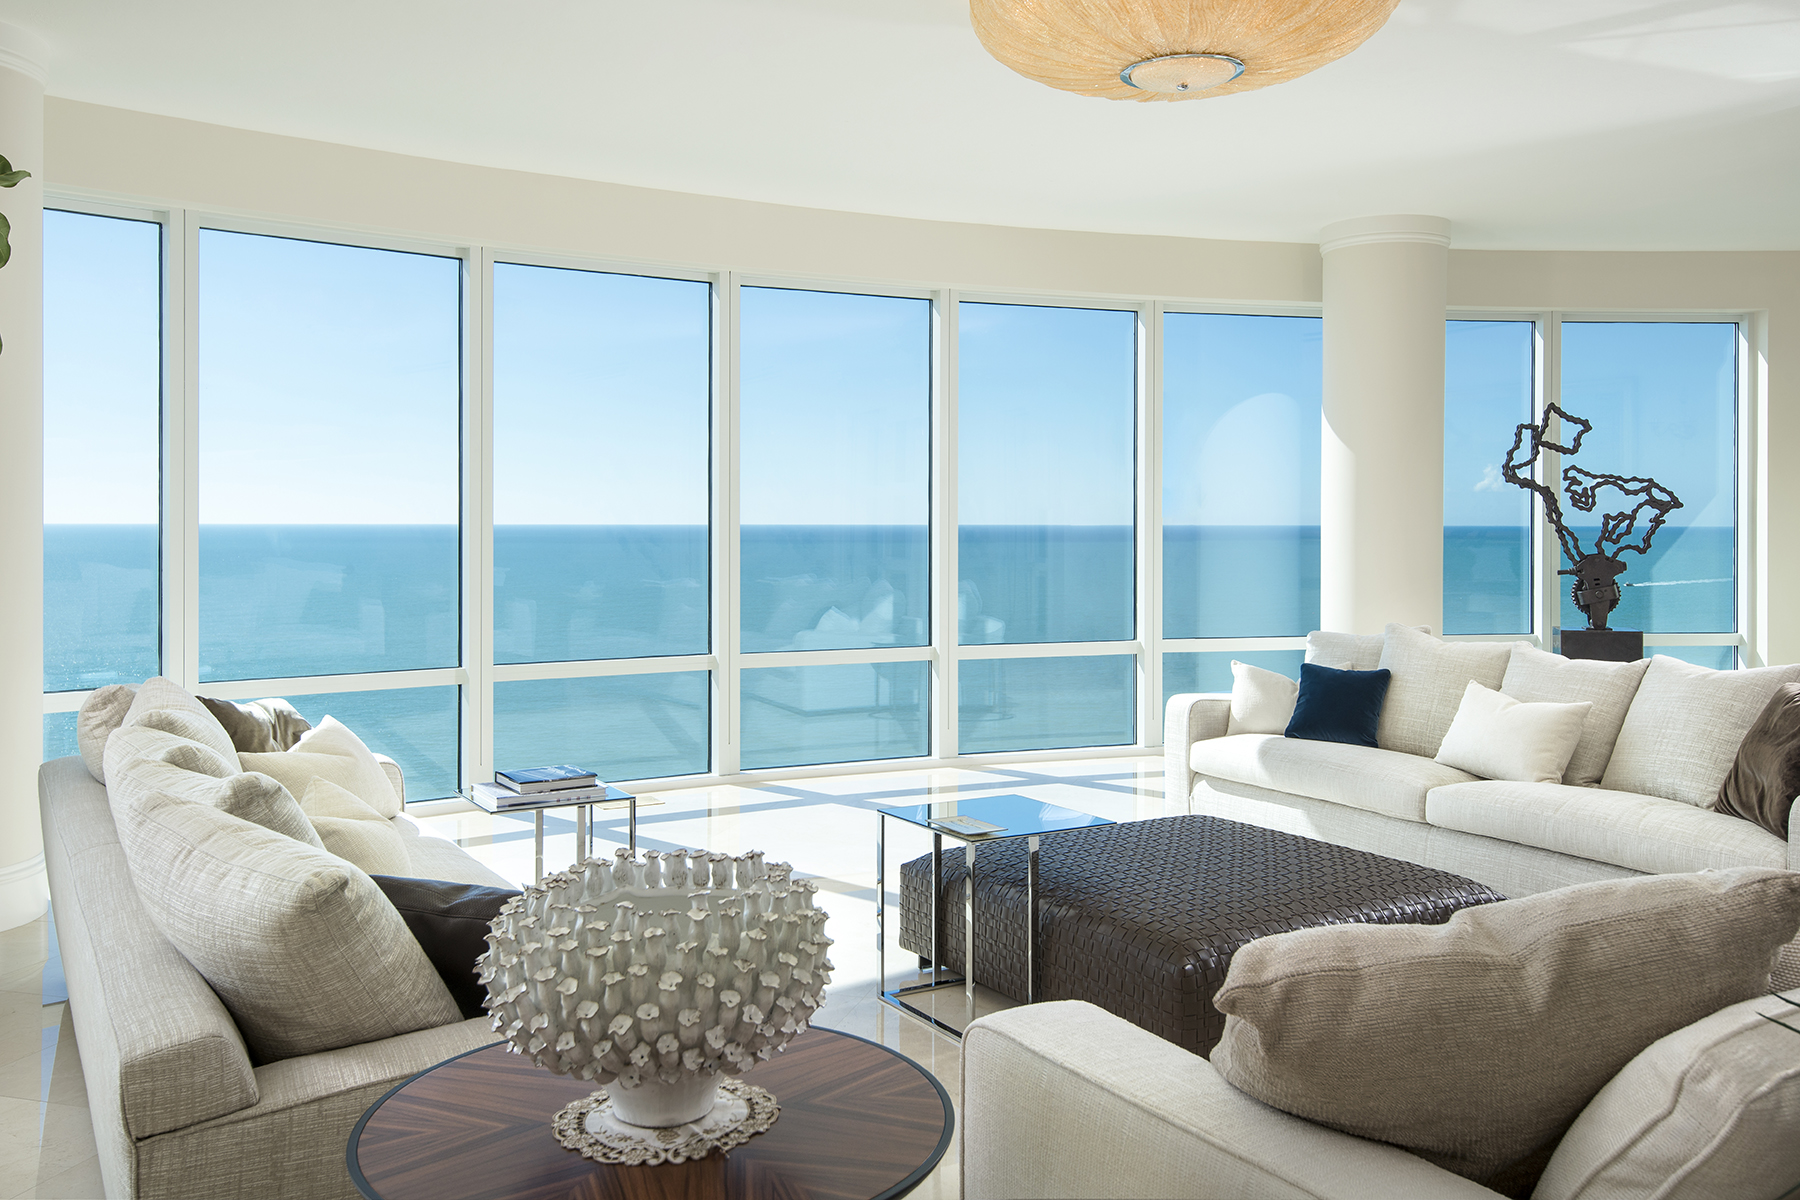 Condominium for Sale at PARK SHORE - REGENT 4101 Gulf Shore Blvd N 12S Naples, Florida, 34103 United States